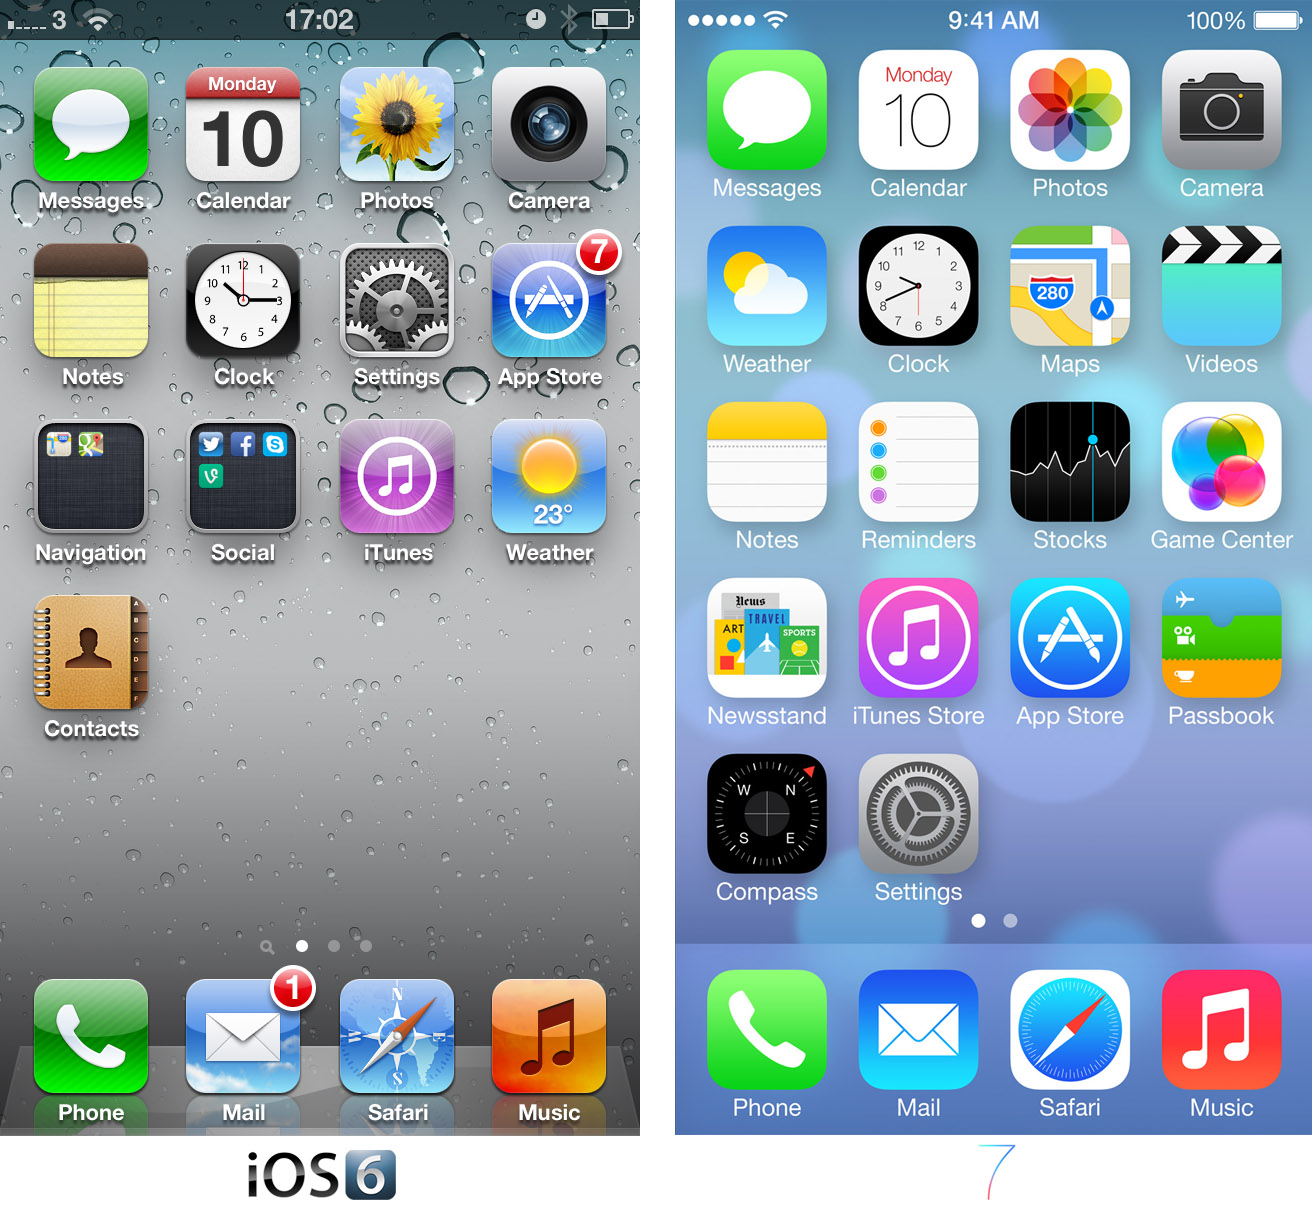 iOS 7 home screen comparison